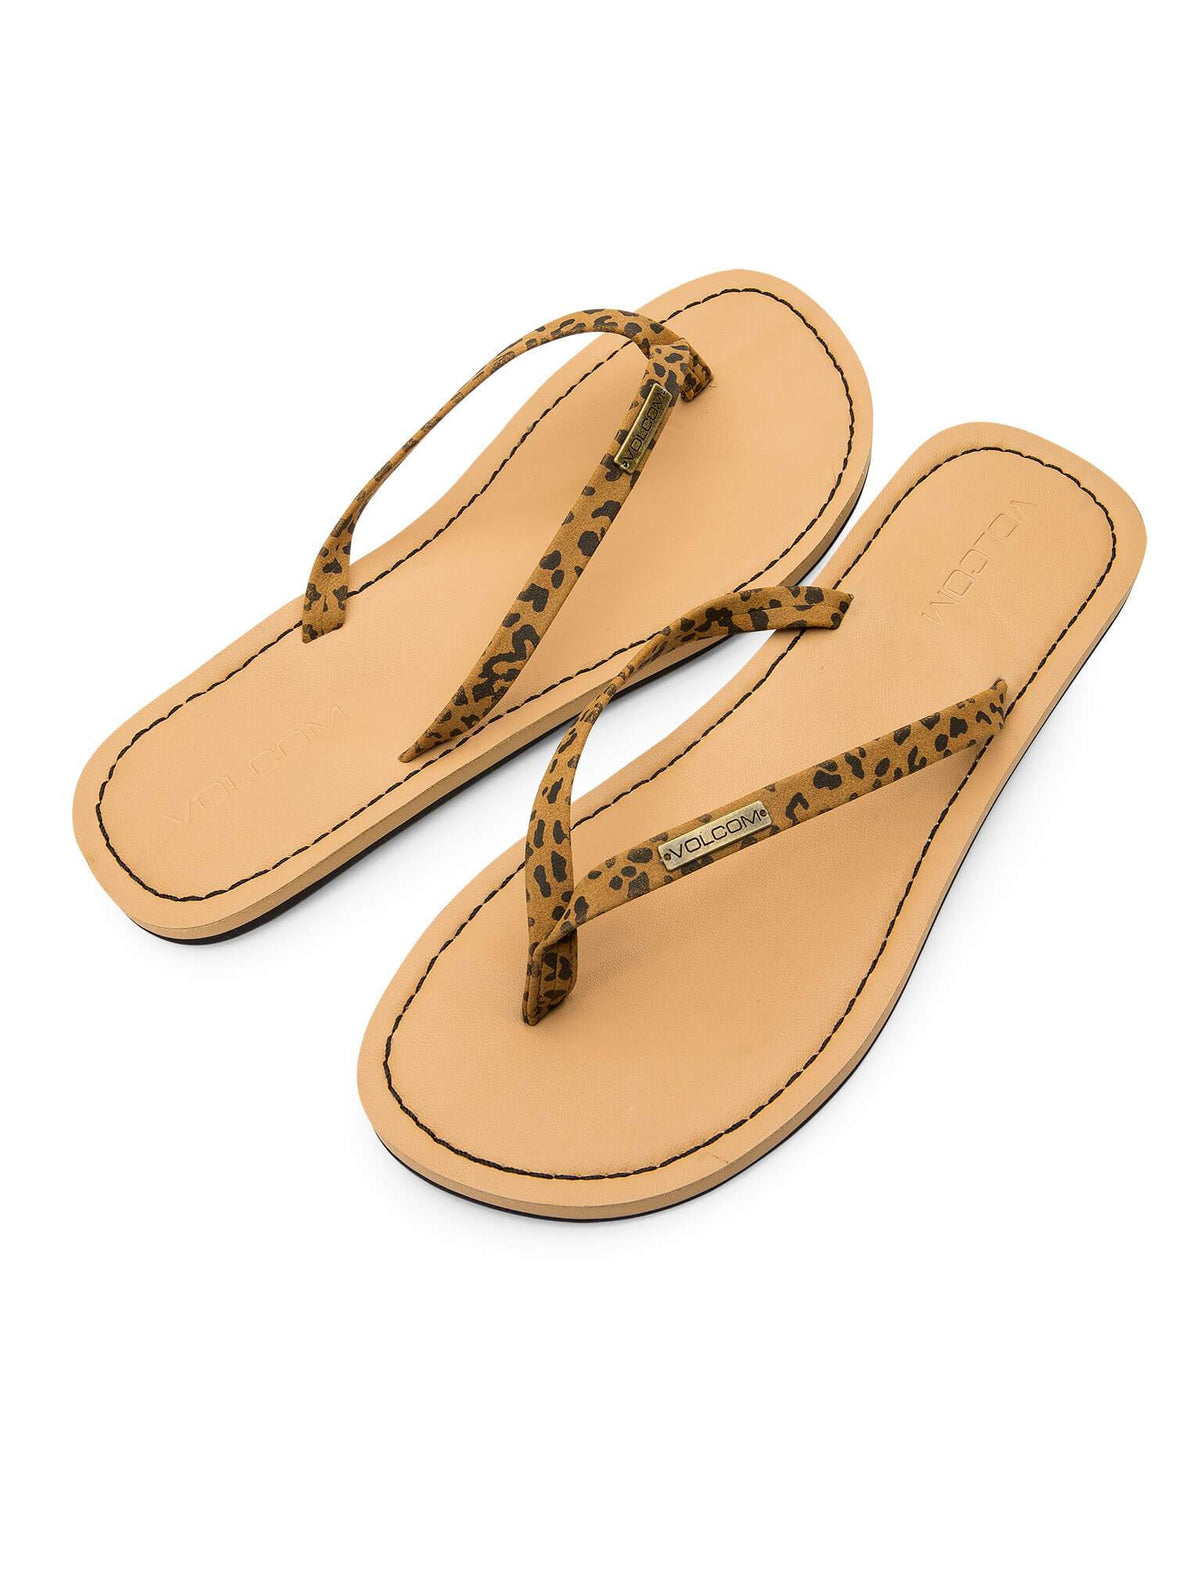 Lagos Sandals In Cheetah, Front View